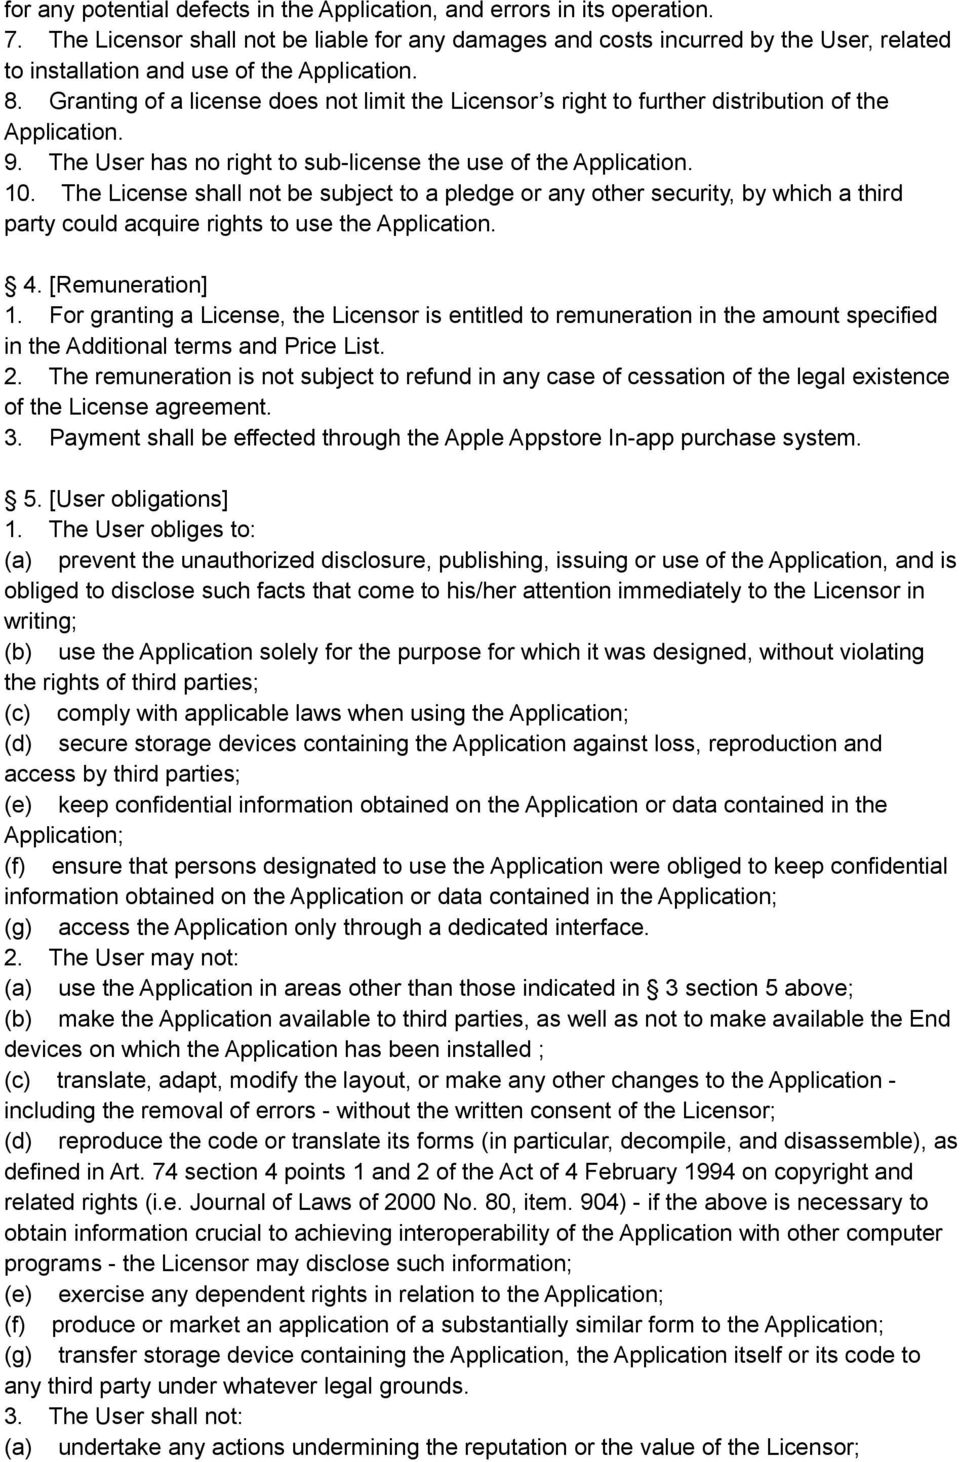 Granting of a license does not limit the Licensor s right to further distribution of the Application. 9. The User has no right to sub-license the use of the Application. 10.